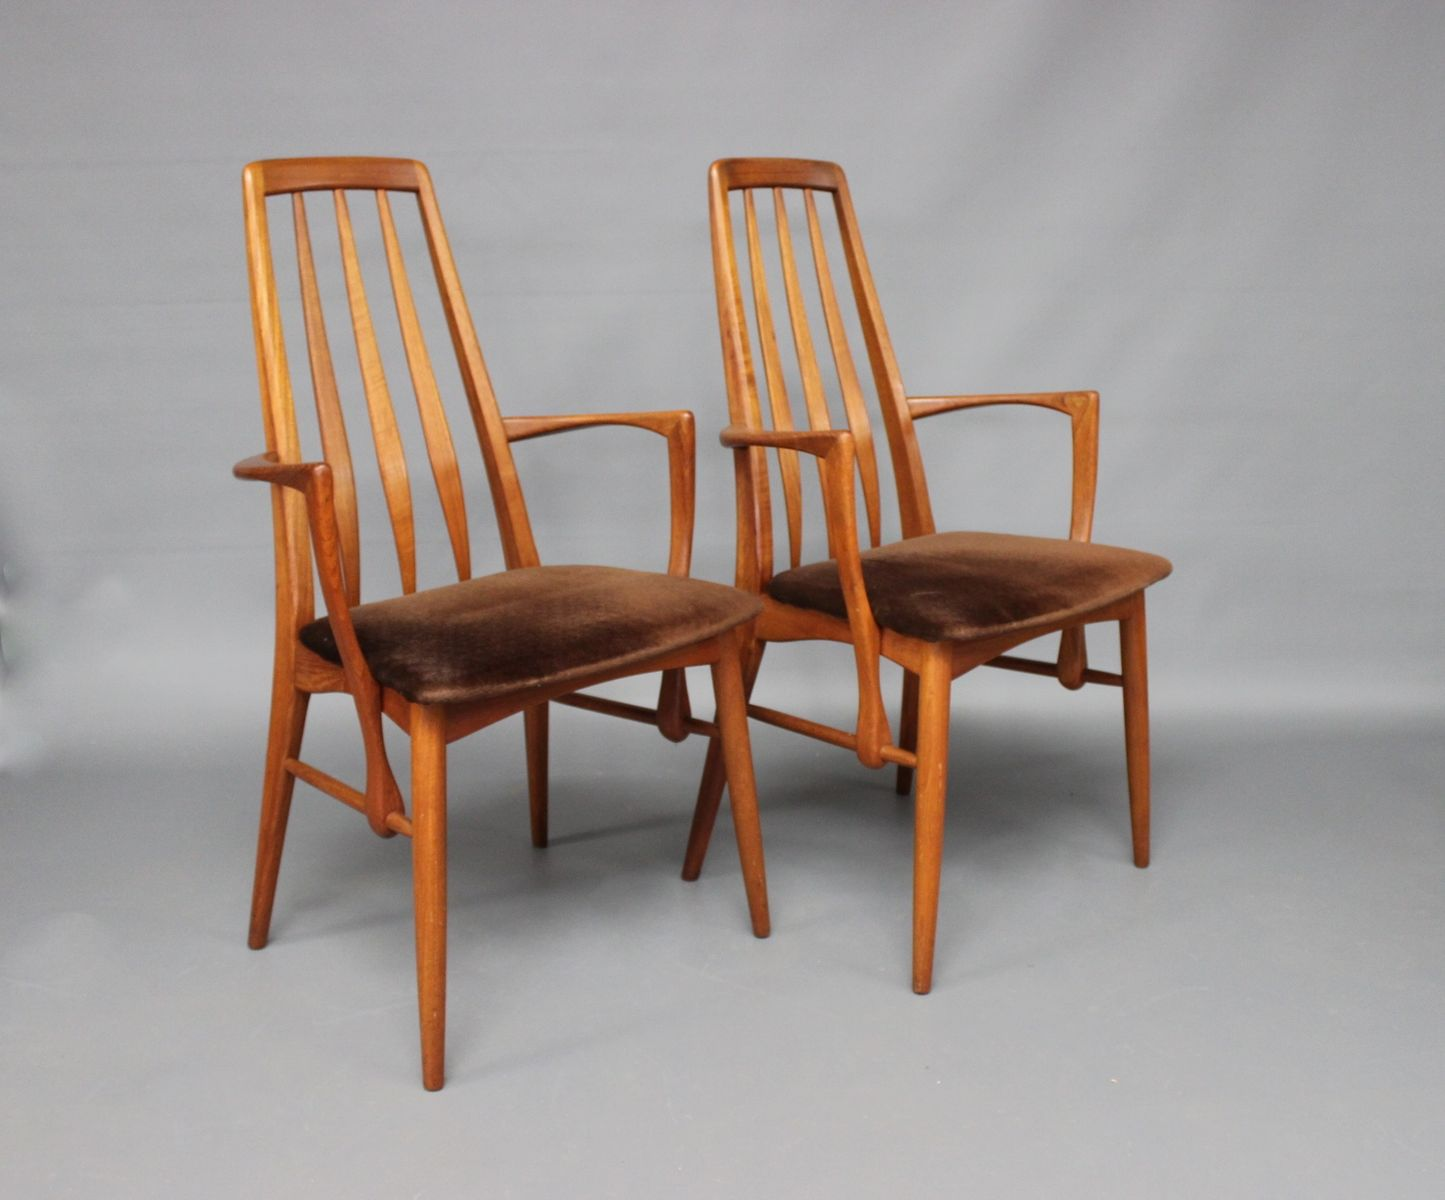 Armchairs for dining